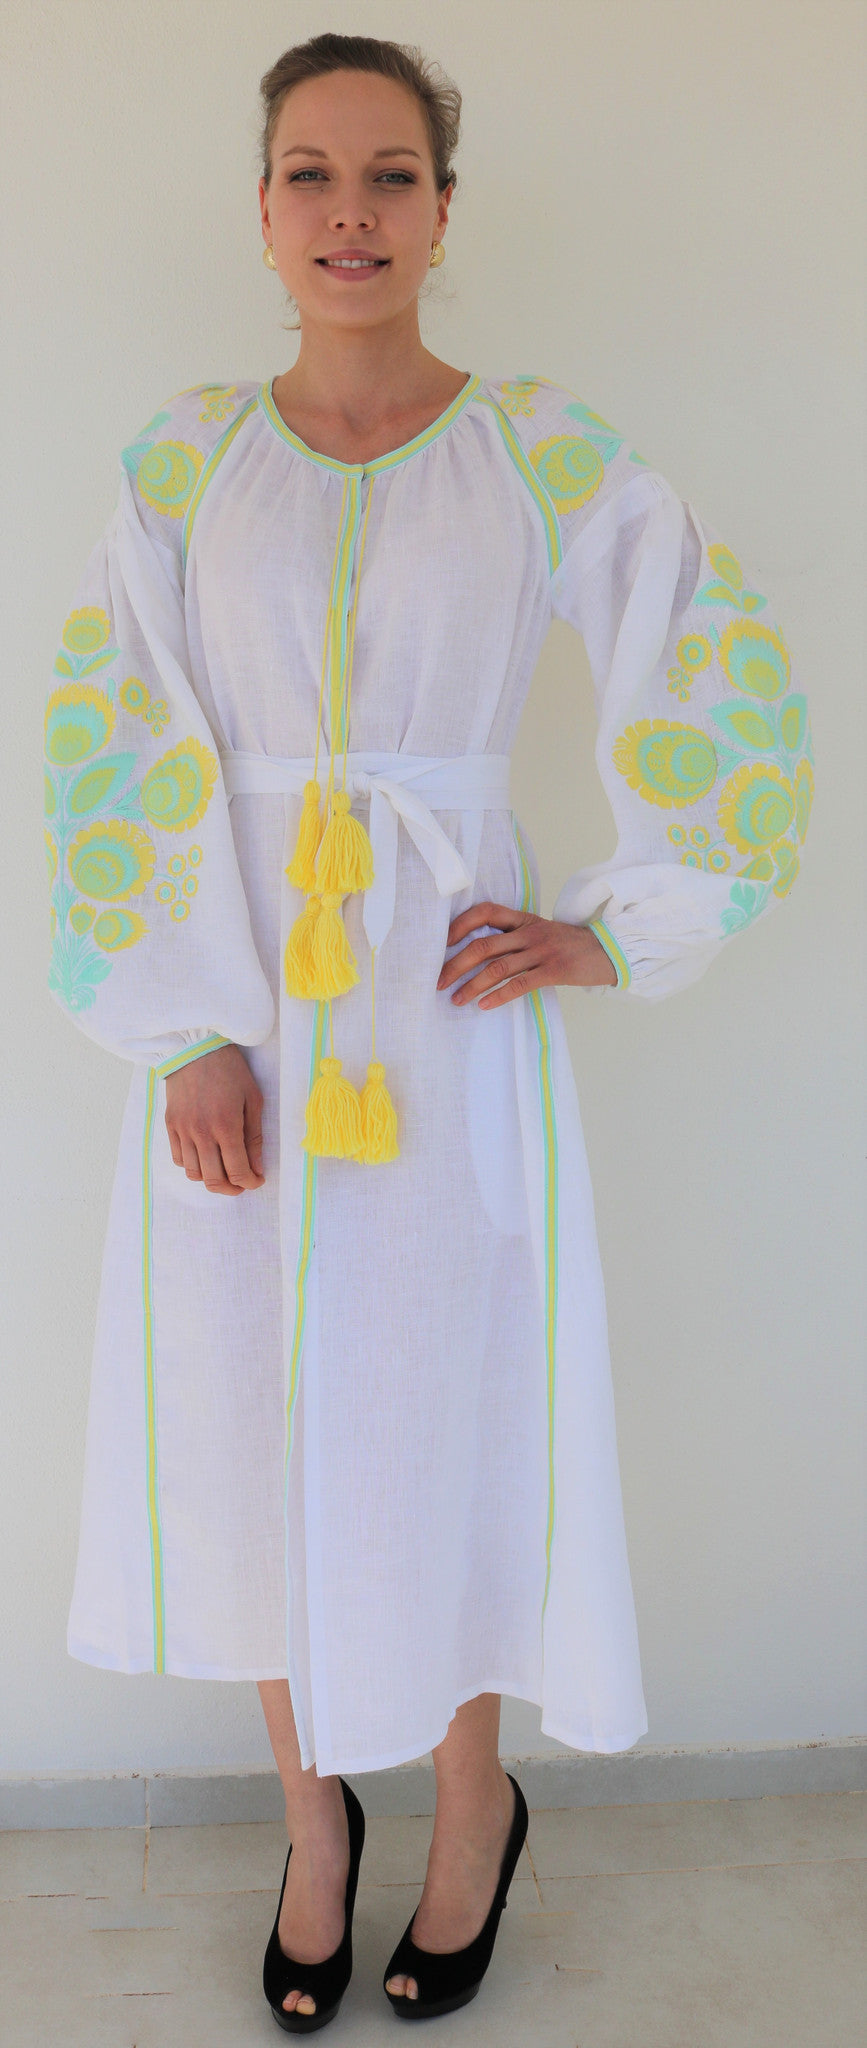 Fanm Mon White Linen Lime Yellow Floral Embroidery Vyshyvanka MIDI Dress Multi Color Embroidery IN STOCK SIZE SMALL MD0112